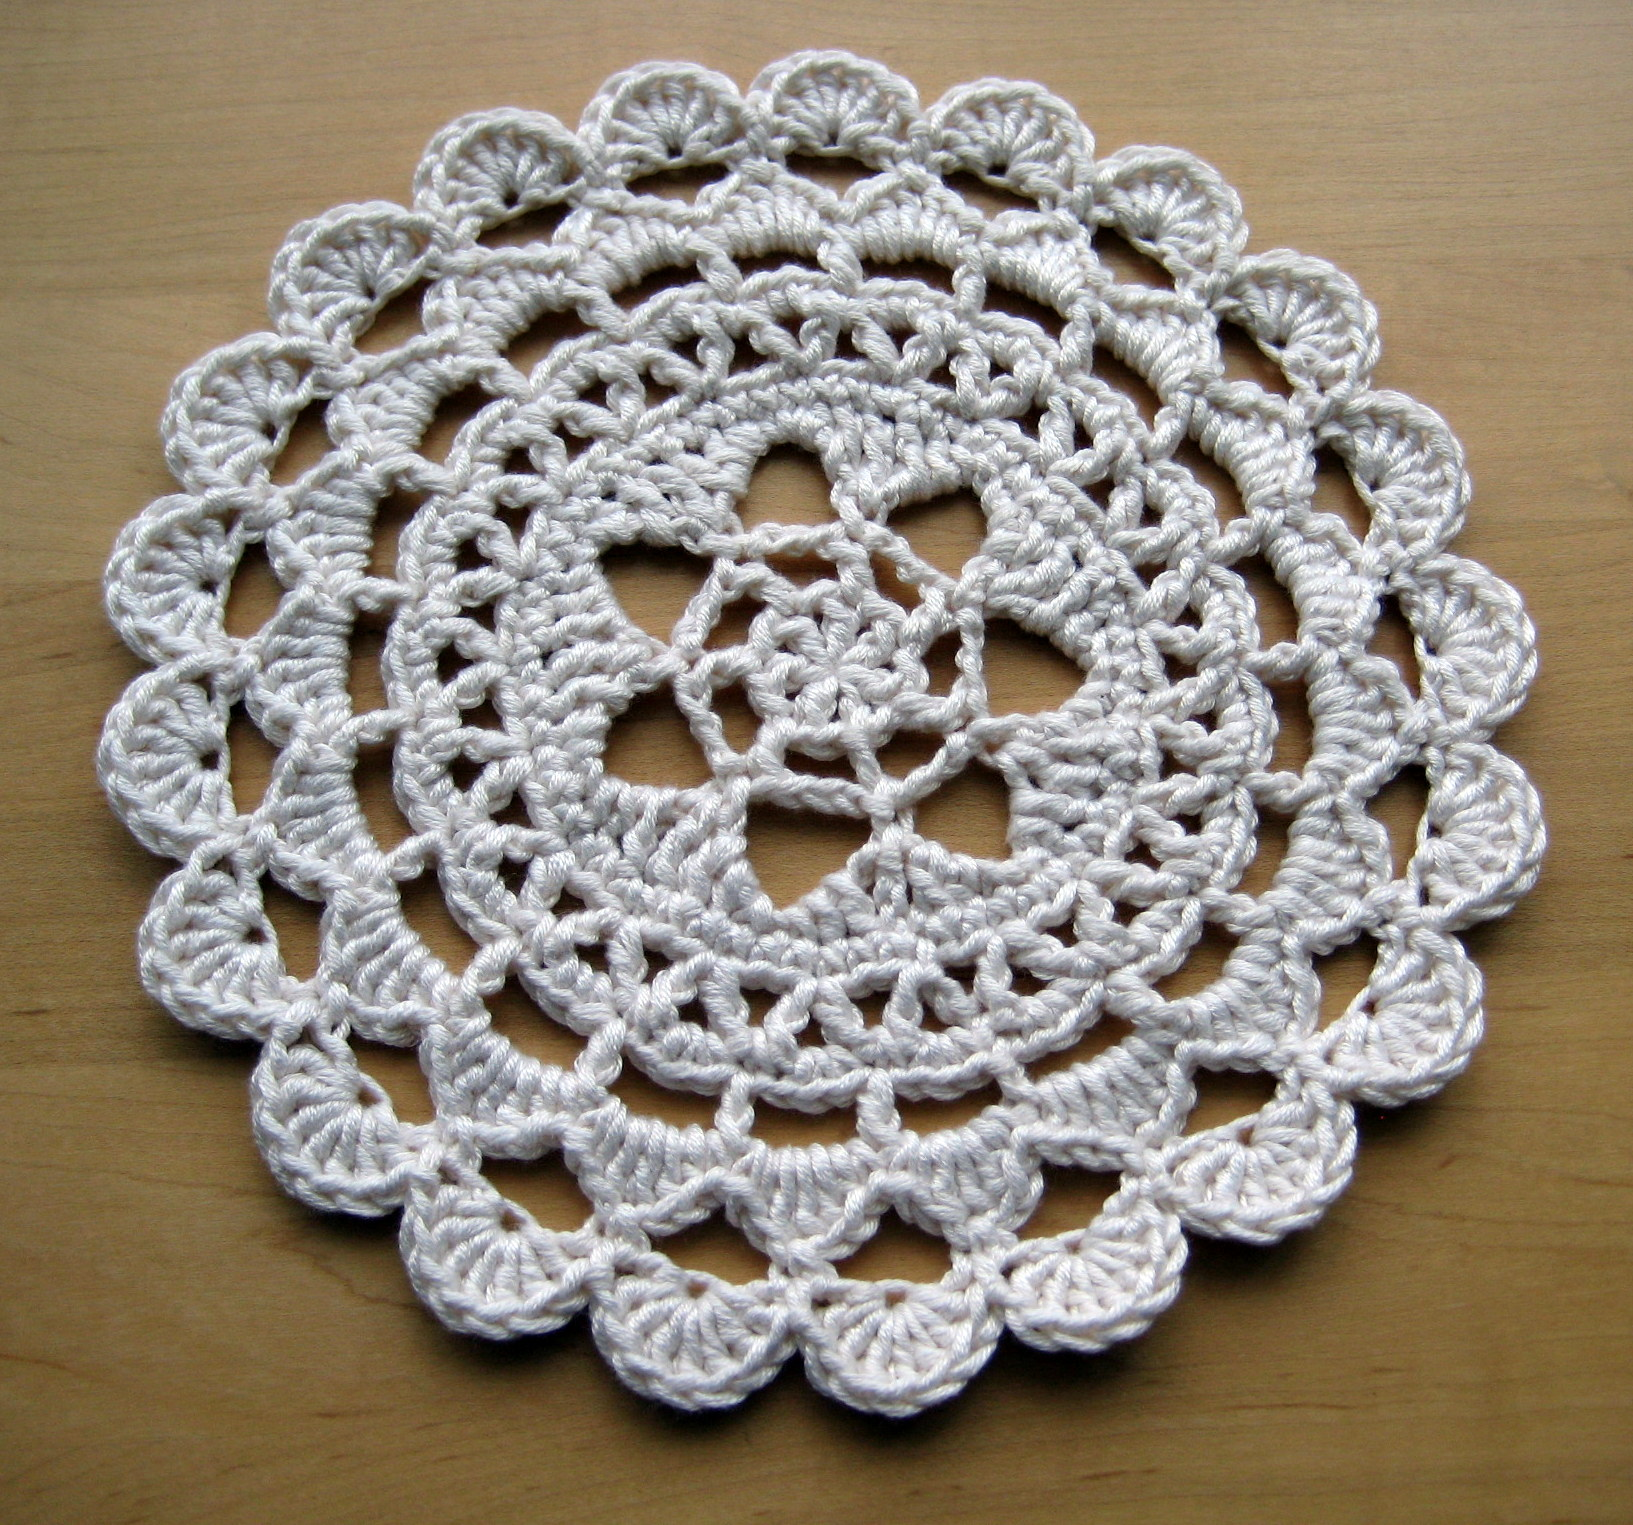 Crocheting Doilies Patterns : Pretty Passion Flower Doily - free pattern in dk weight yarn